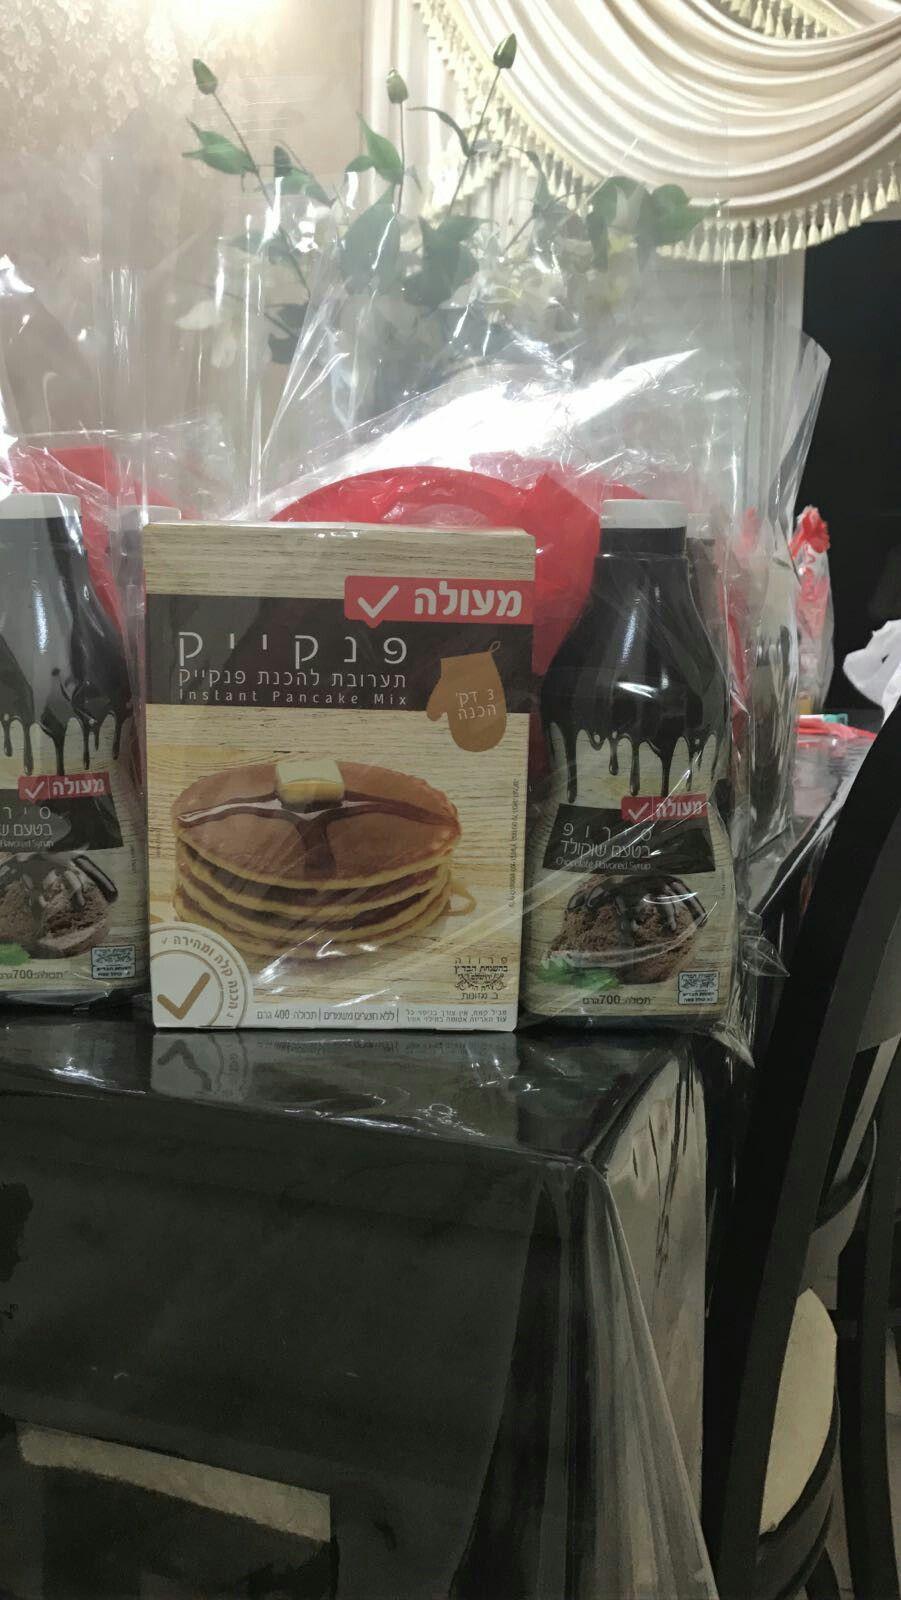 Pin by Dassi on פורים Pancakes mix, Takeout container